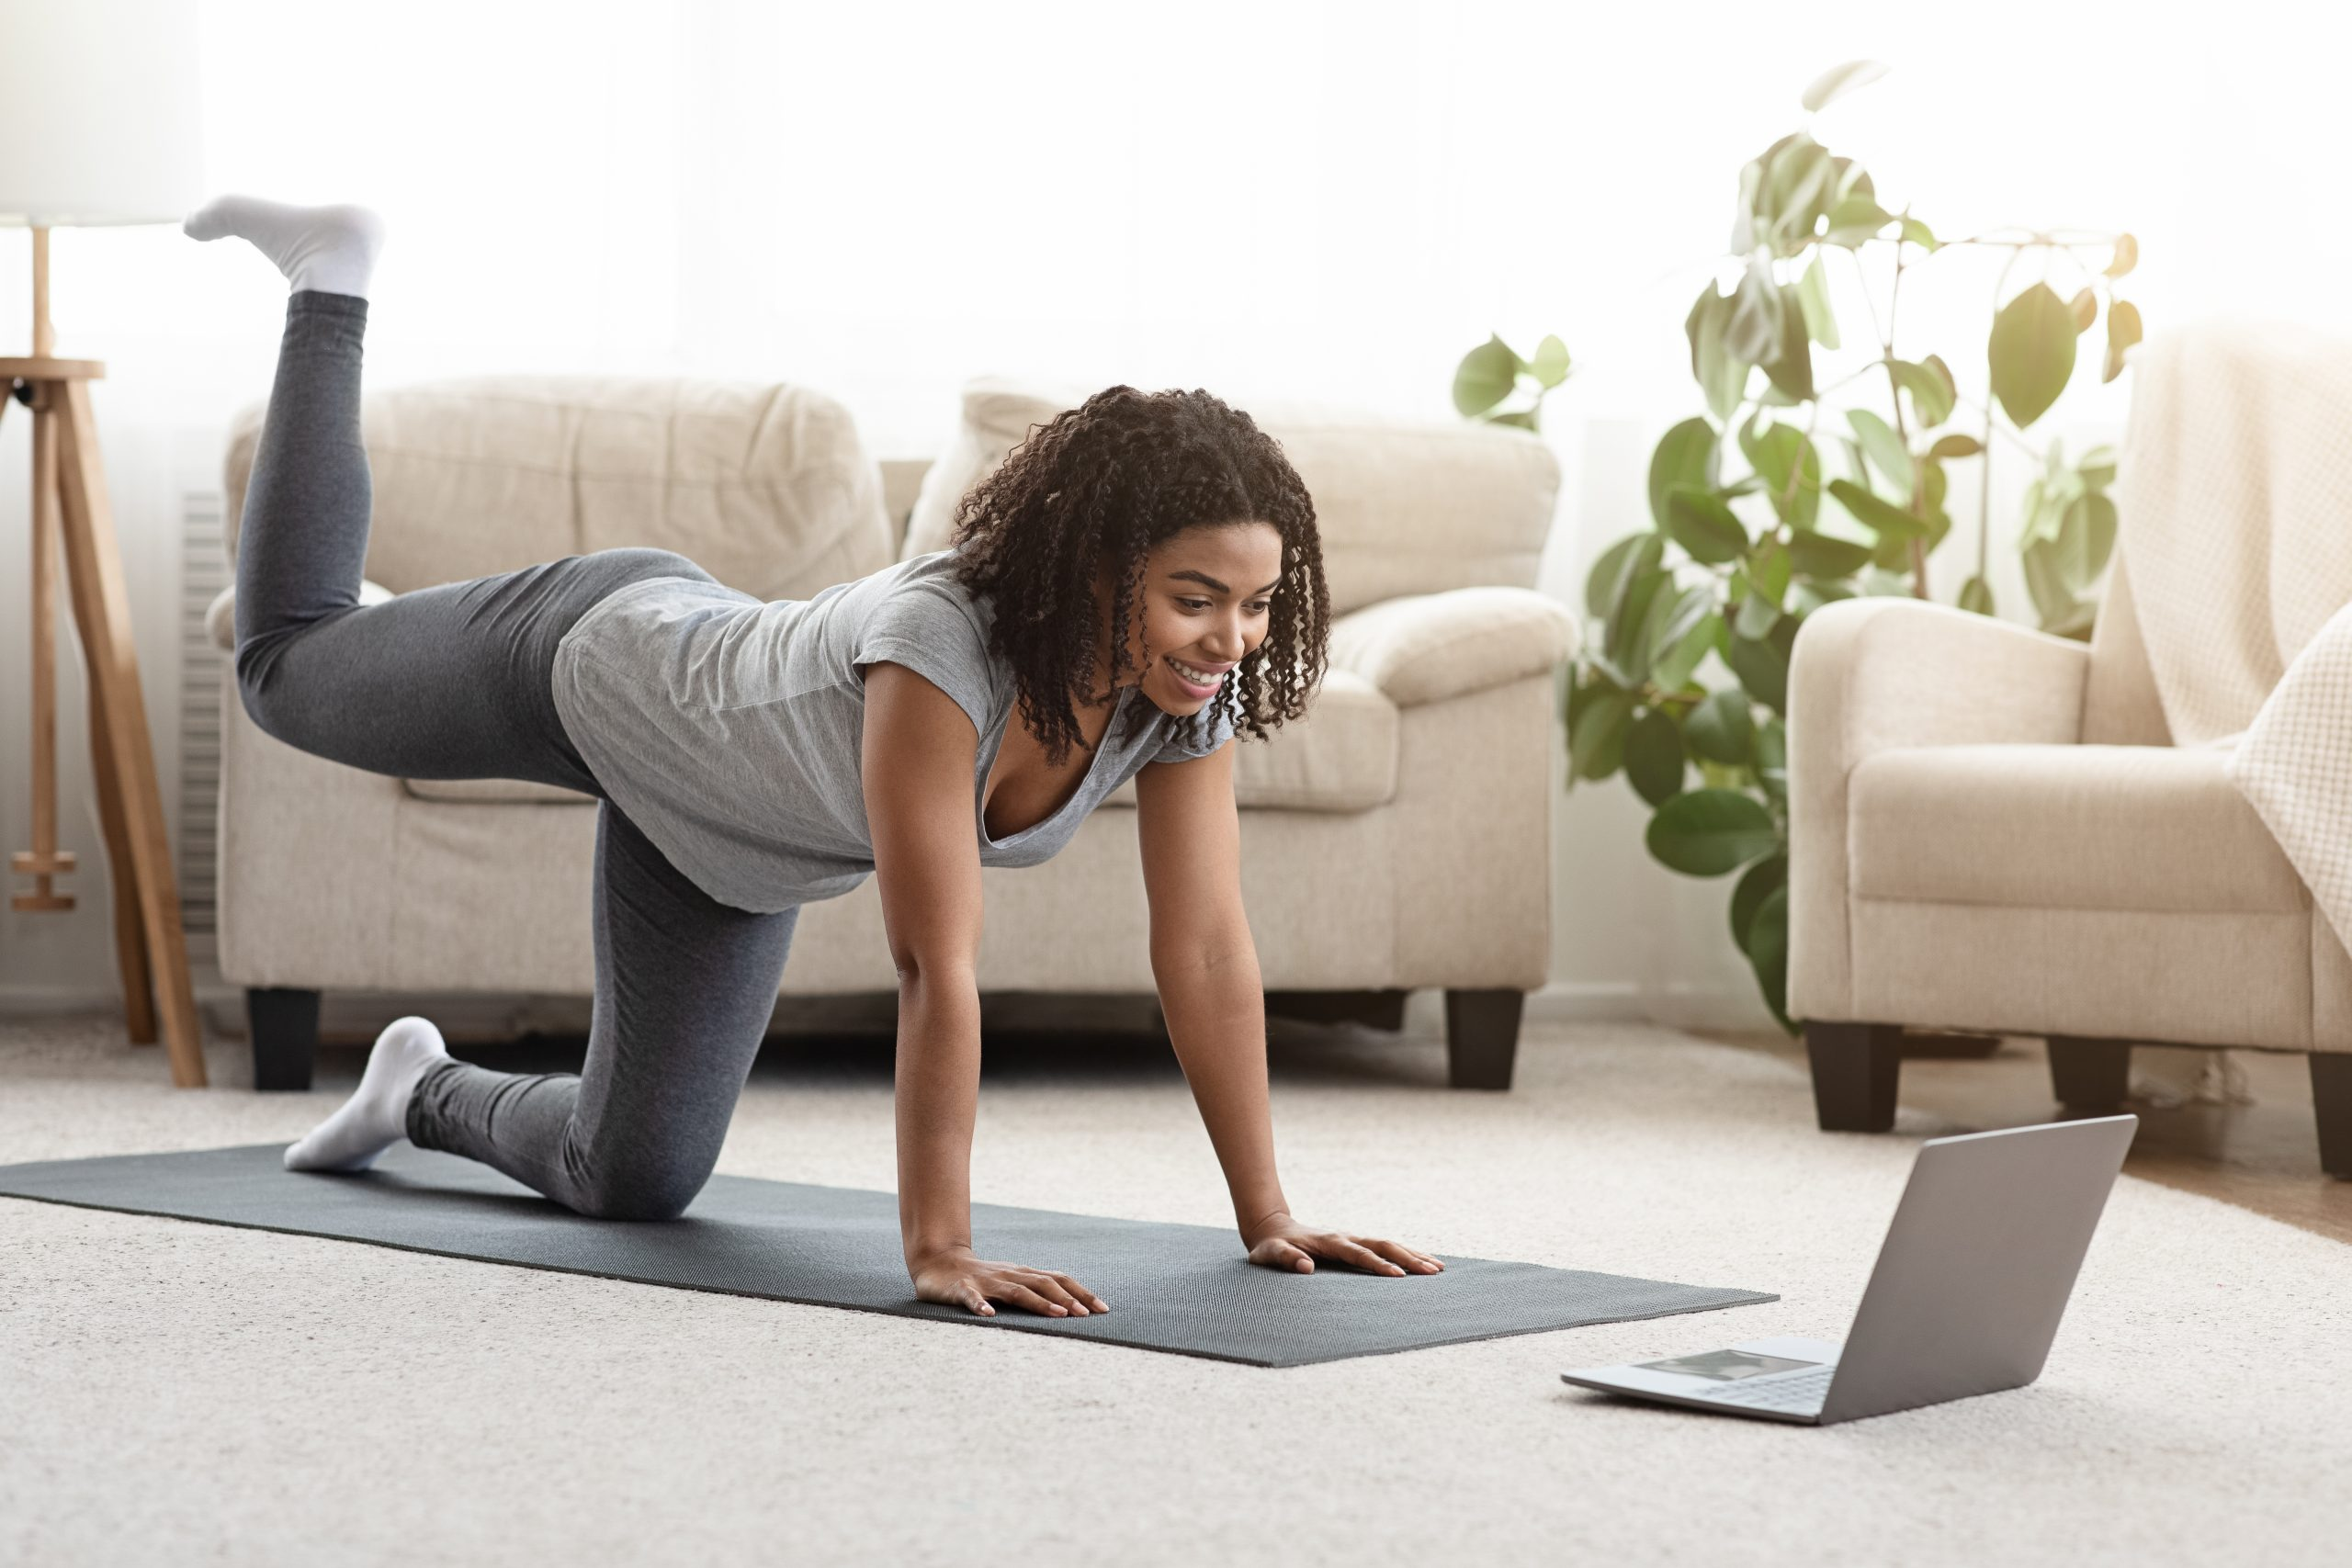 woman working out in her living room on a yoga mat looking at a laptop